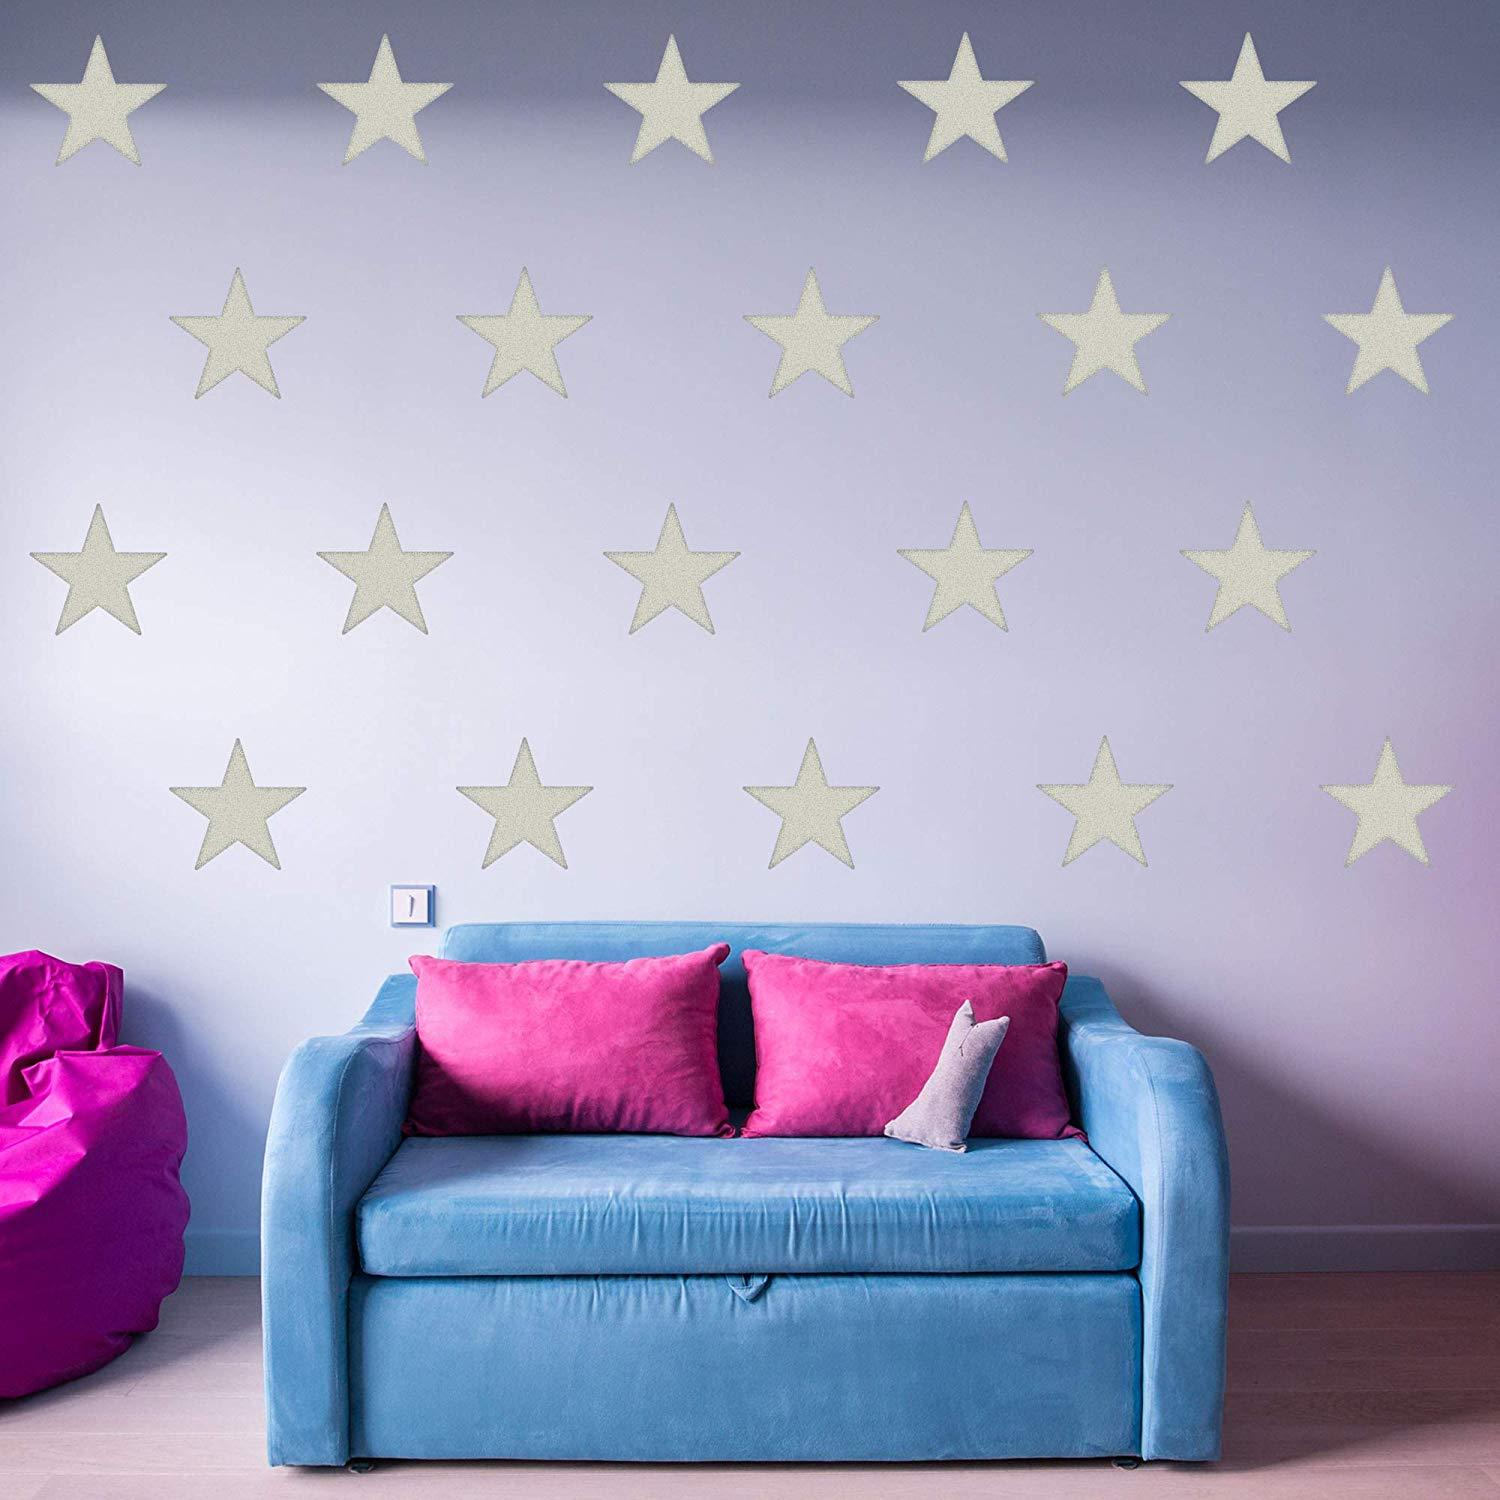 VWAQ Stars Decals for Walls - Pack of 20 Vinyl Stickers - Girls Room Nursery Decor - VWAQ Vinyl Wall Art Quotes and Prints